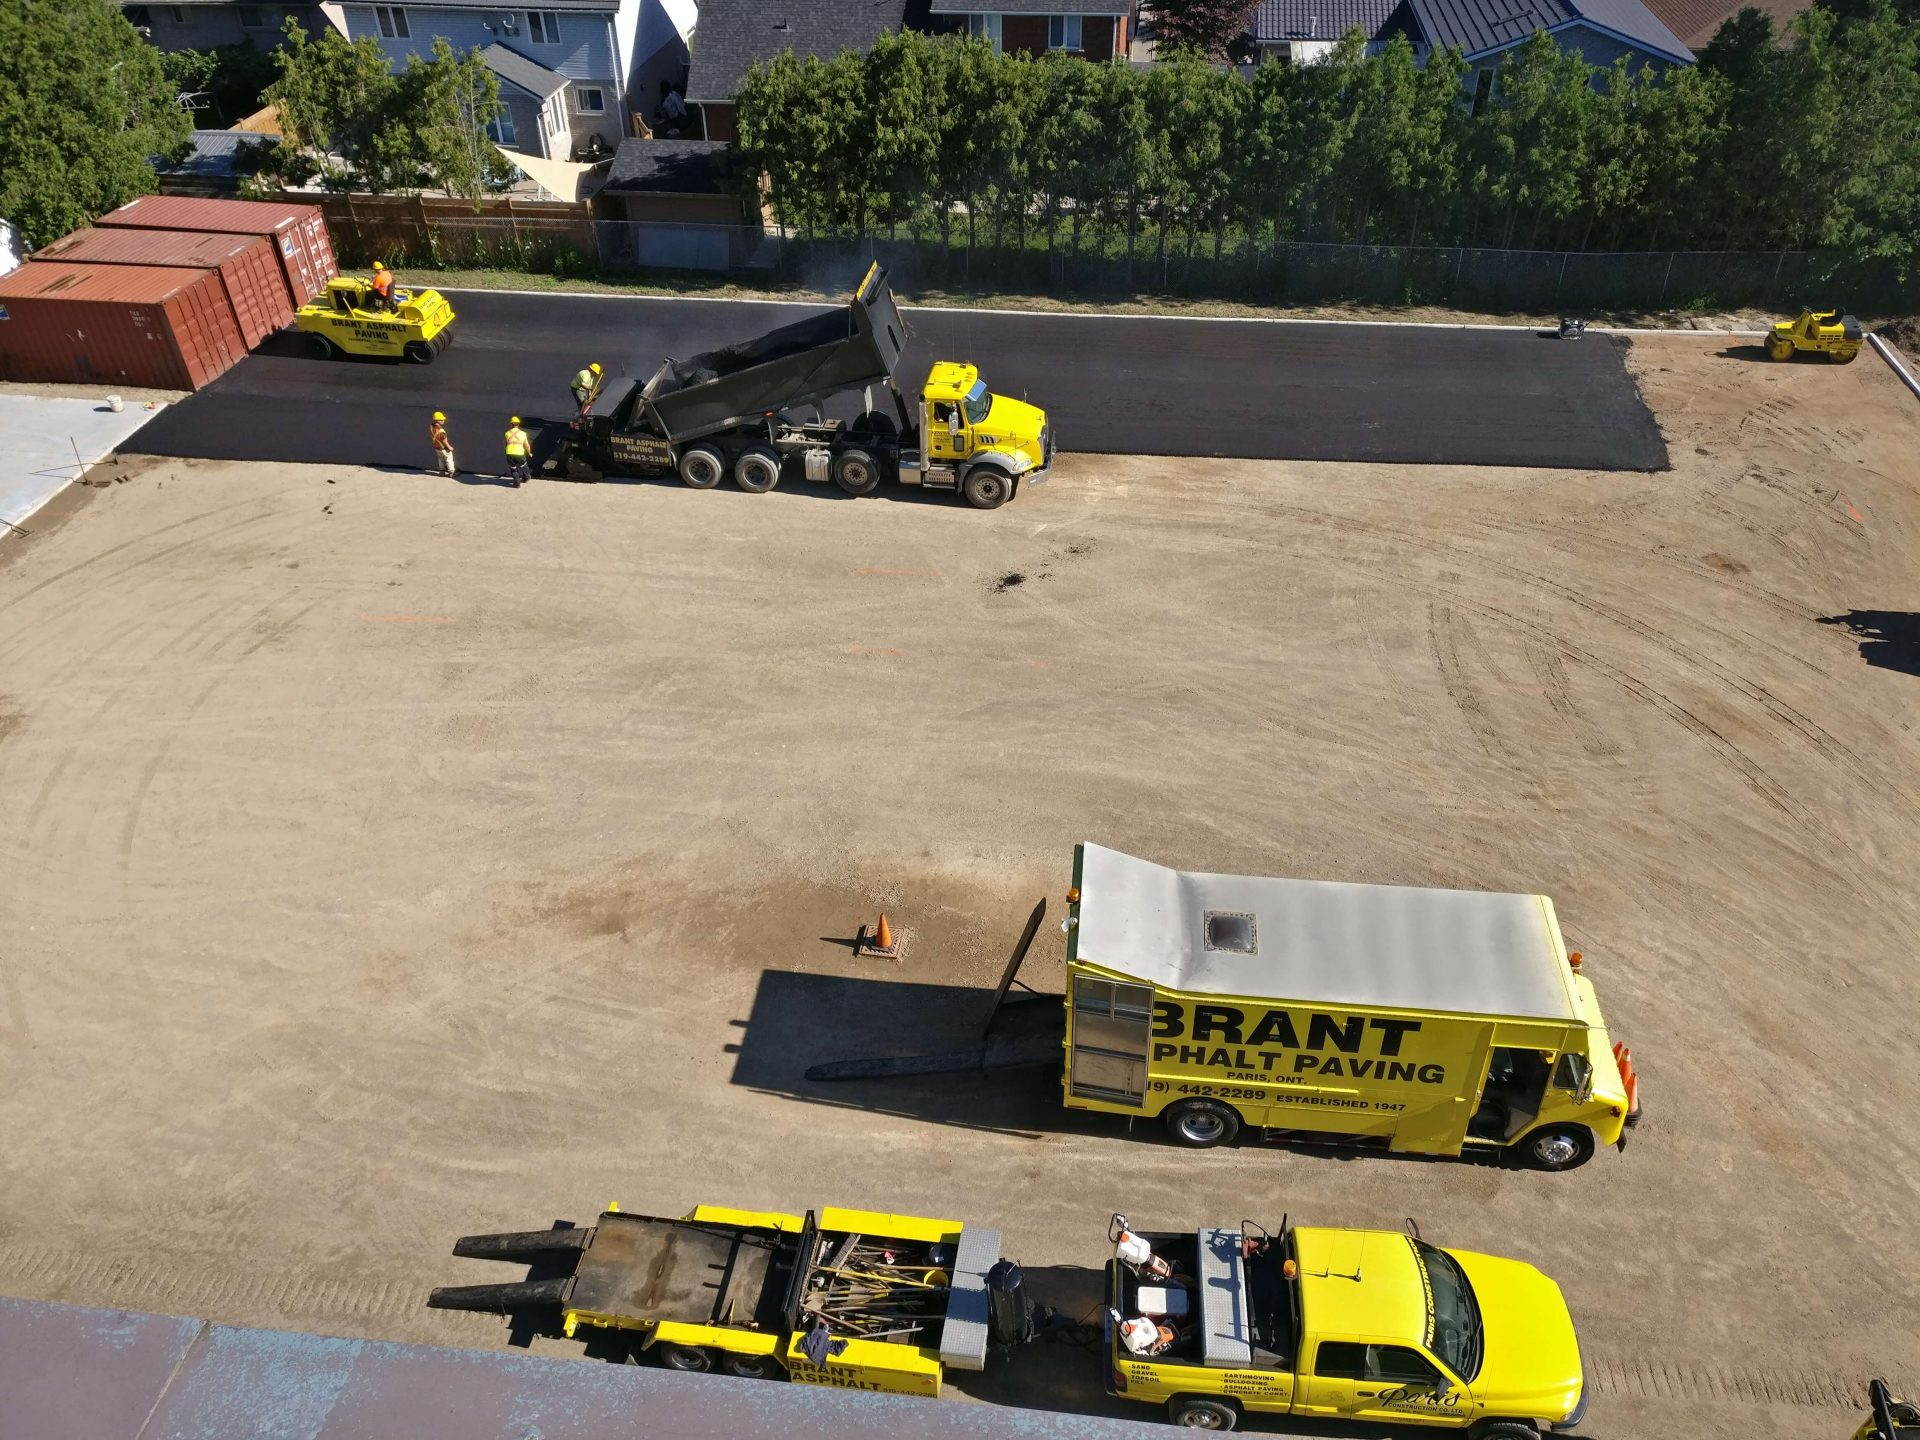 Asphalt paving with yellow trucks